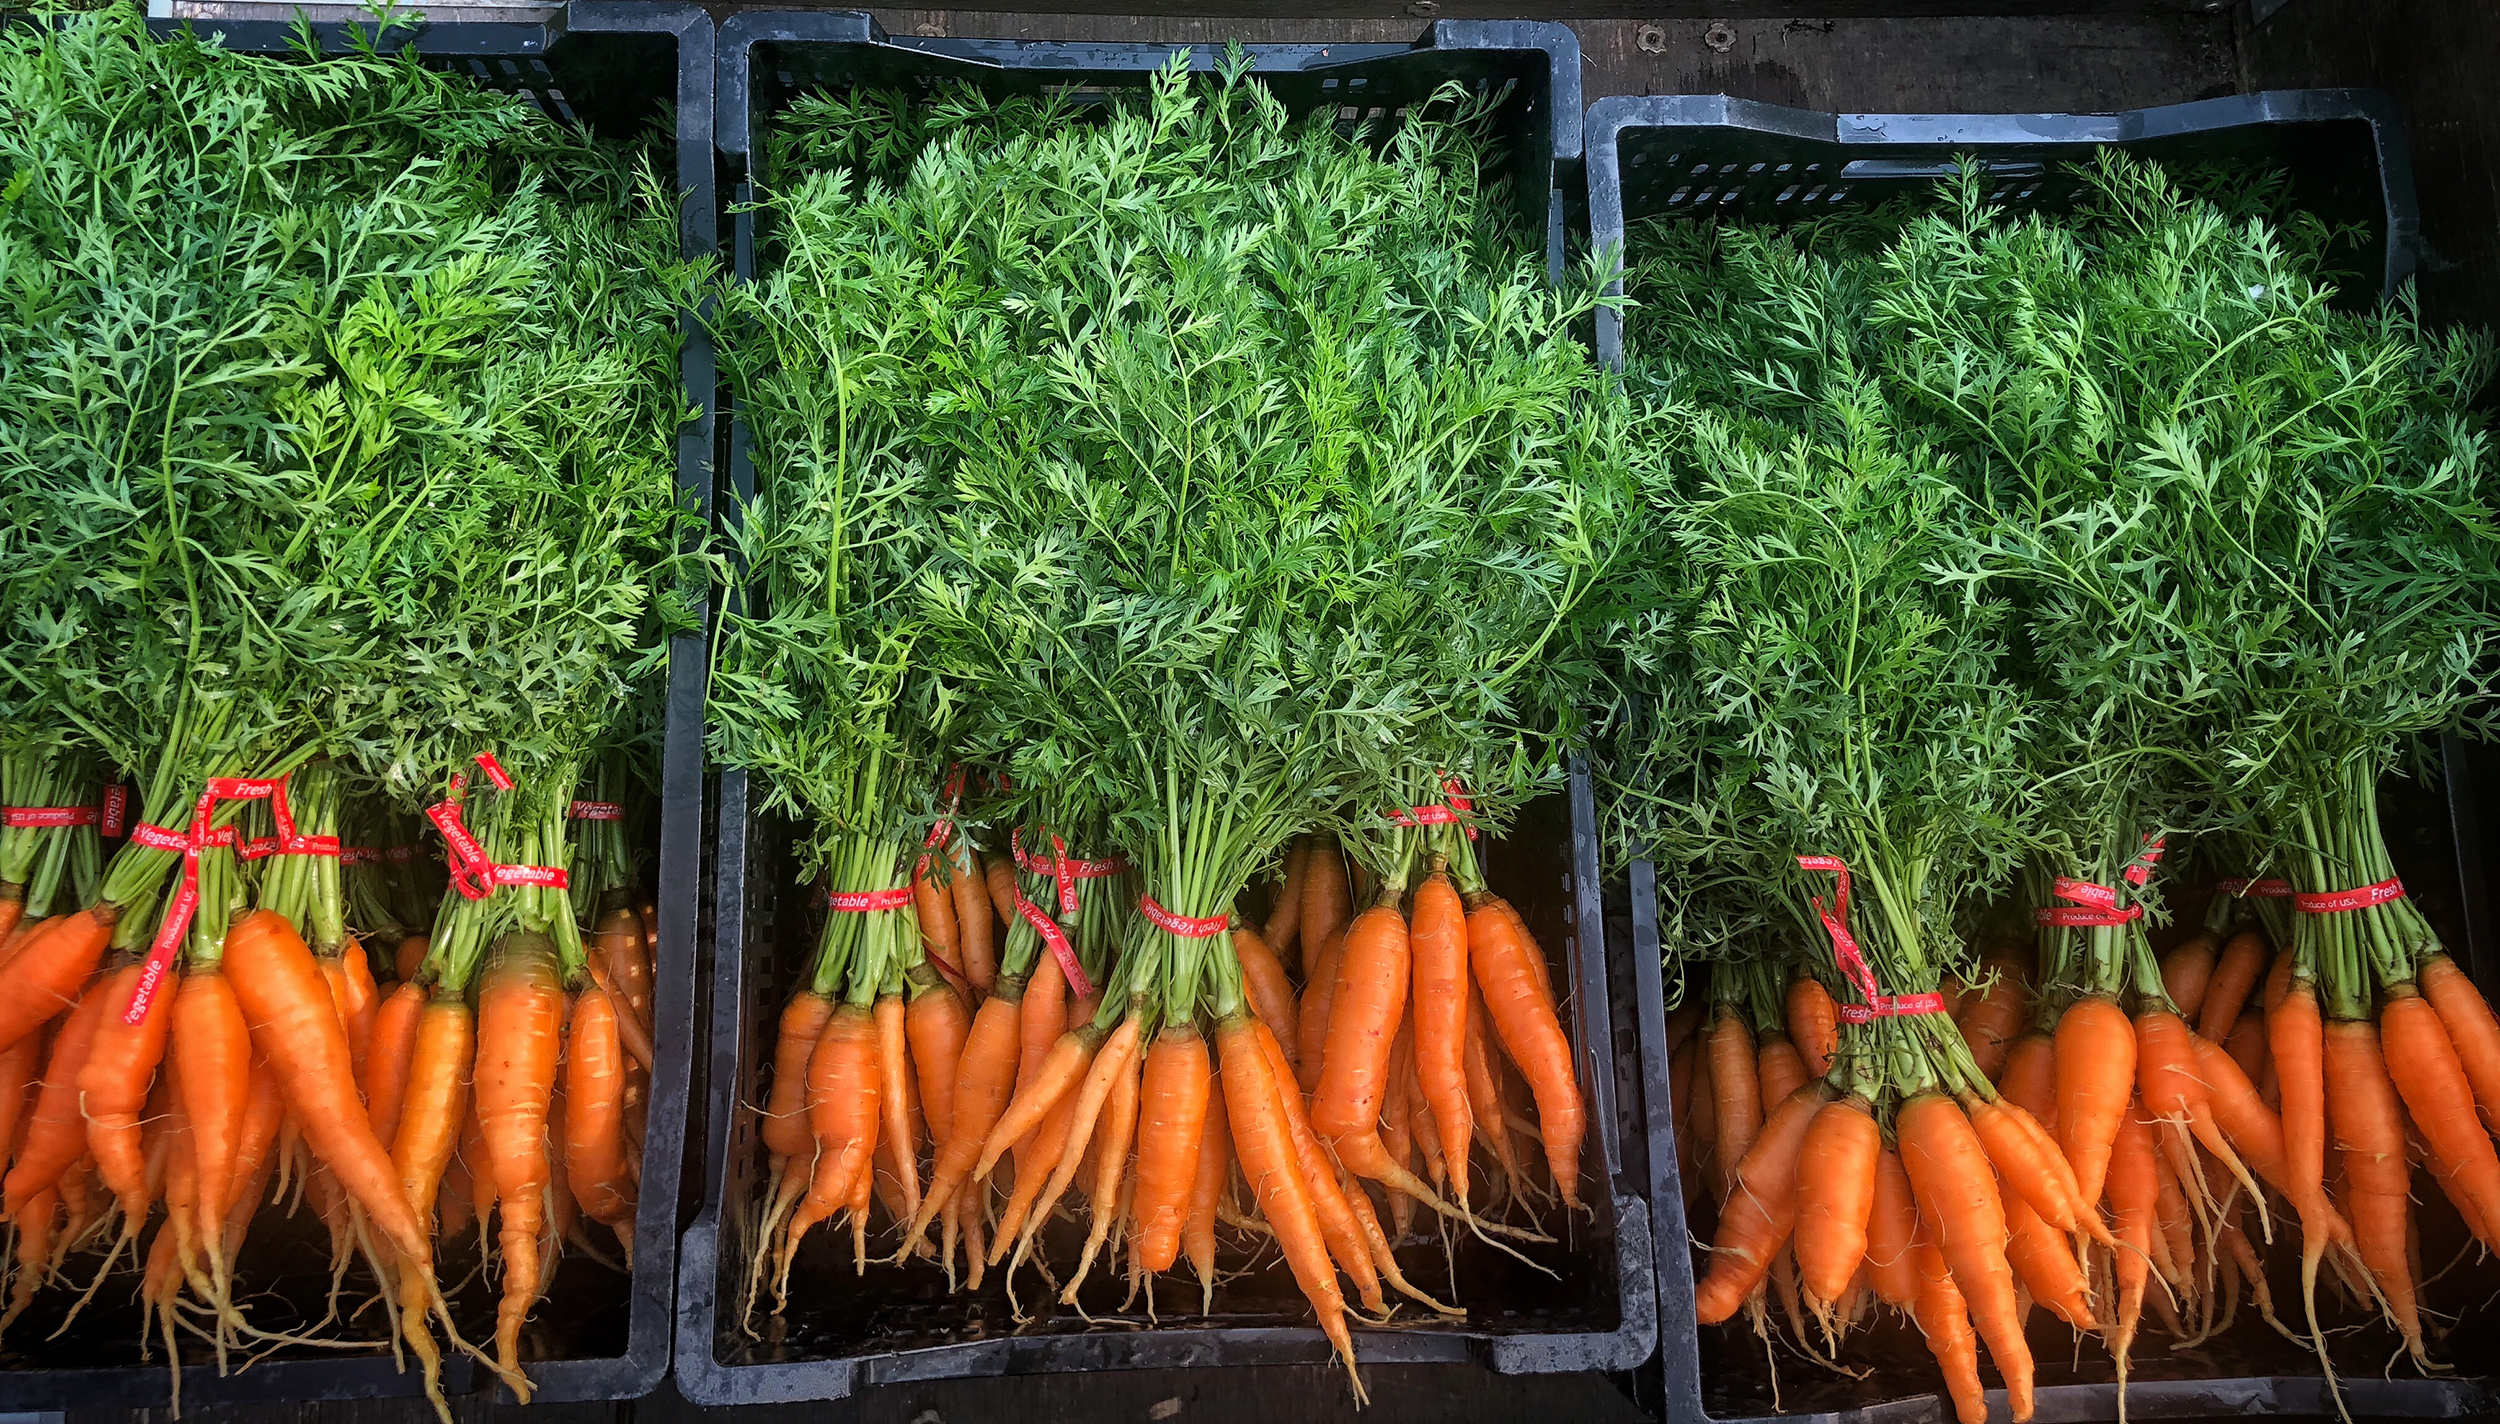 The First Carrots and Taking Care of the Land